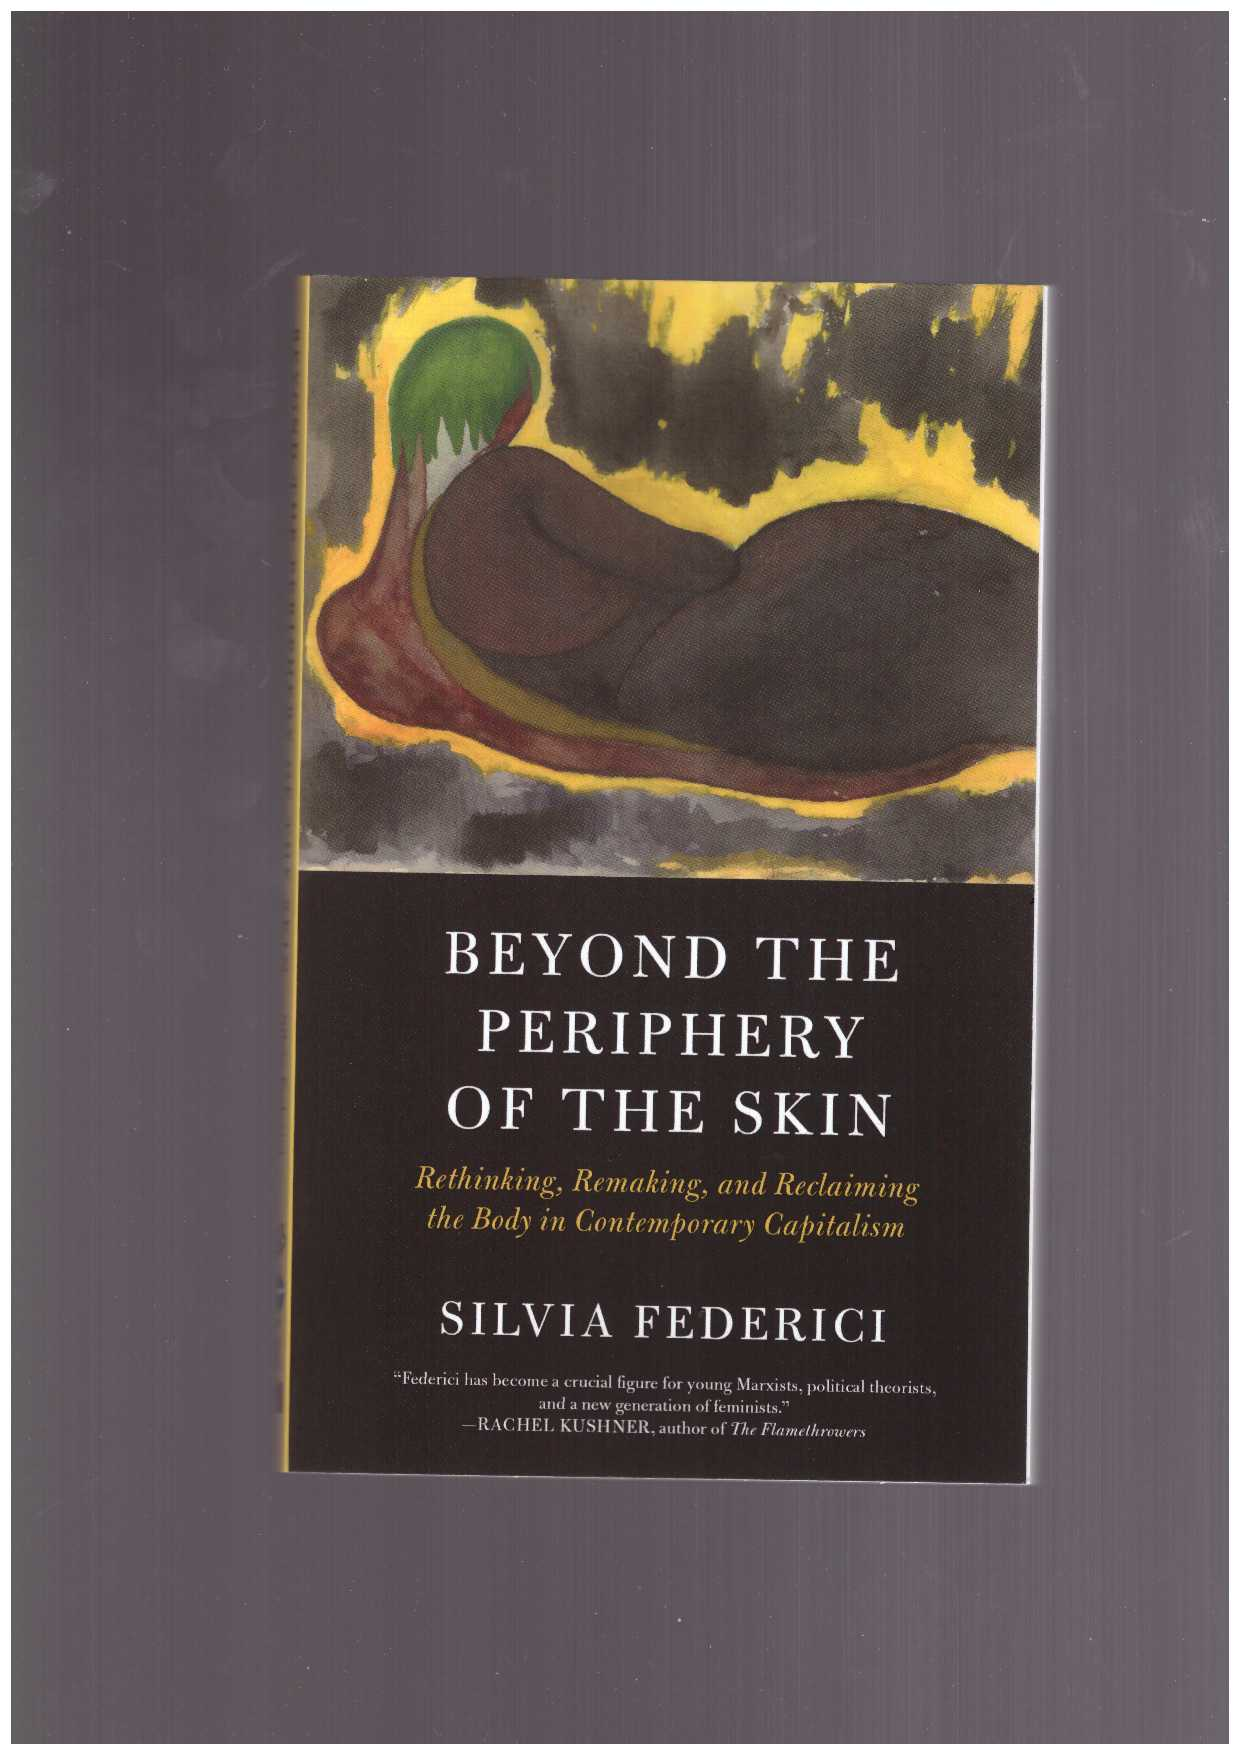 FEDERICI, Silvia - Beyond the periphery of the skin